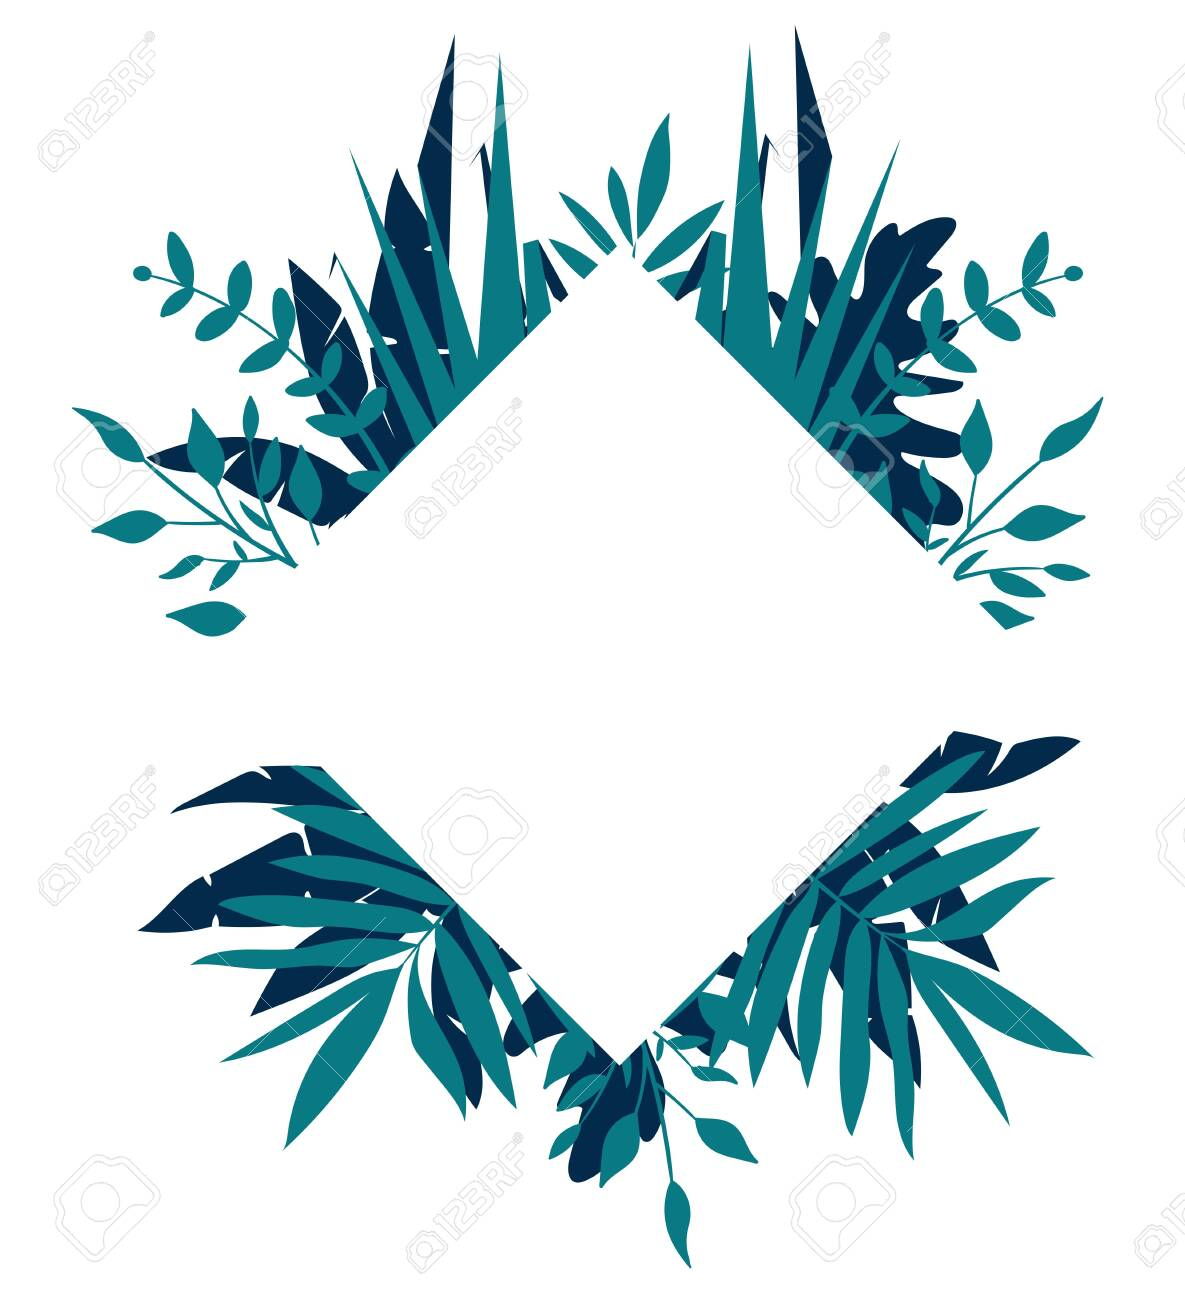 Rhombus tropical frame, template with place for text. Vector illustration, isolated on white background - 124366854